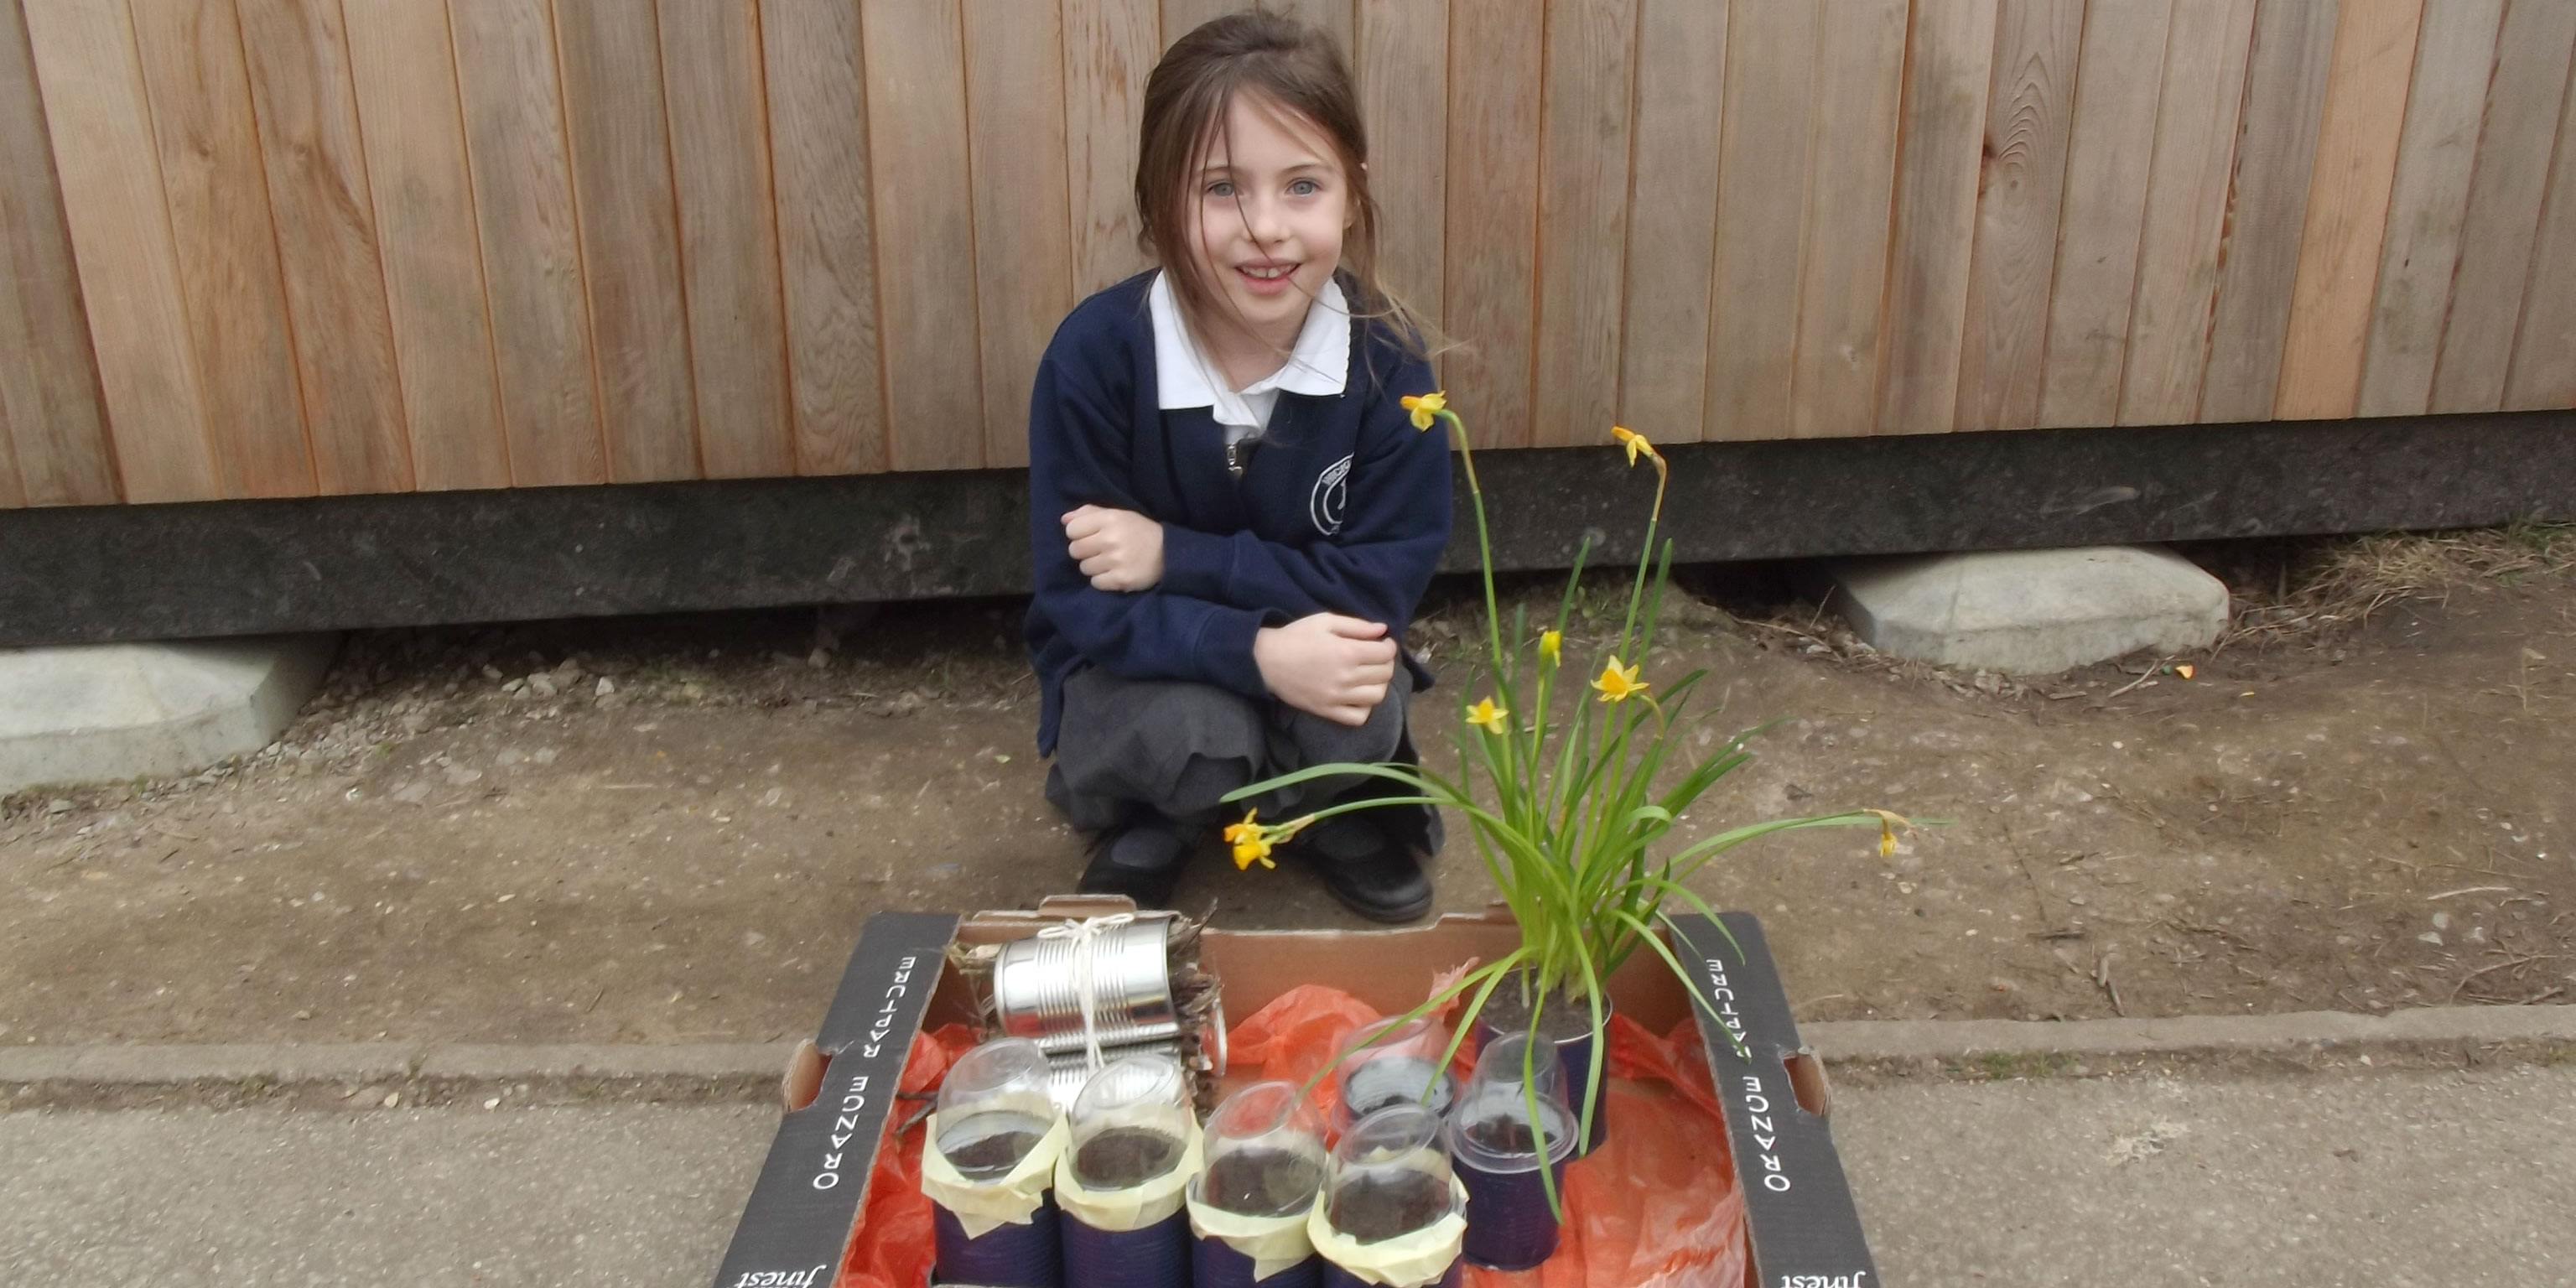 http://www.wicklewoodschool.co.uk/2017/04/upcycling/